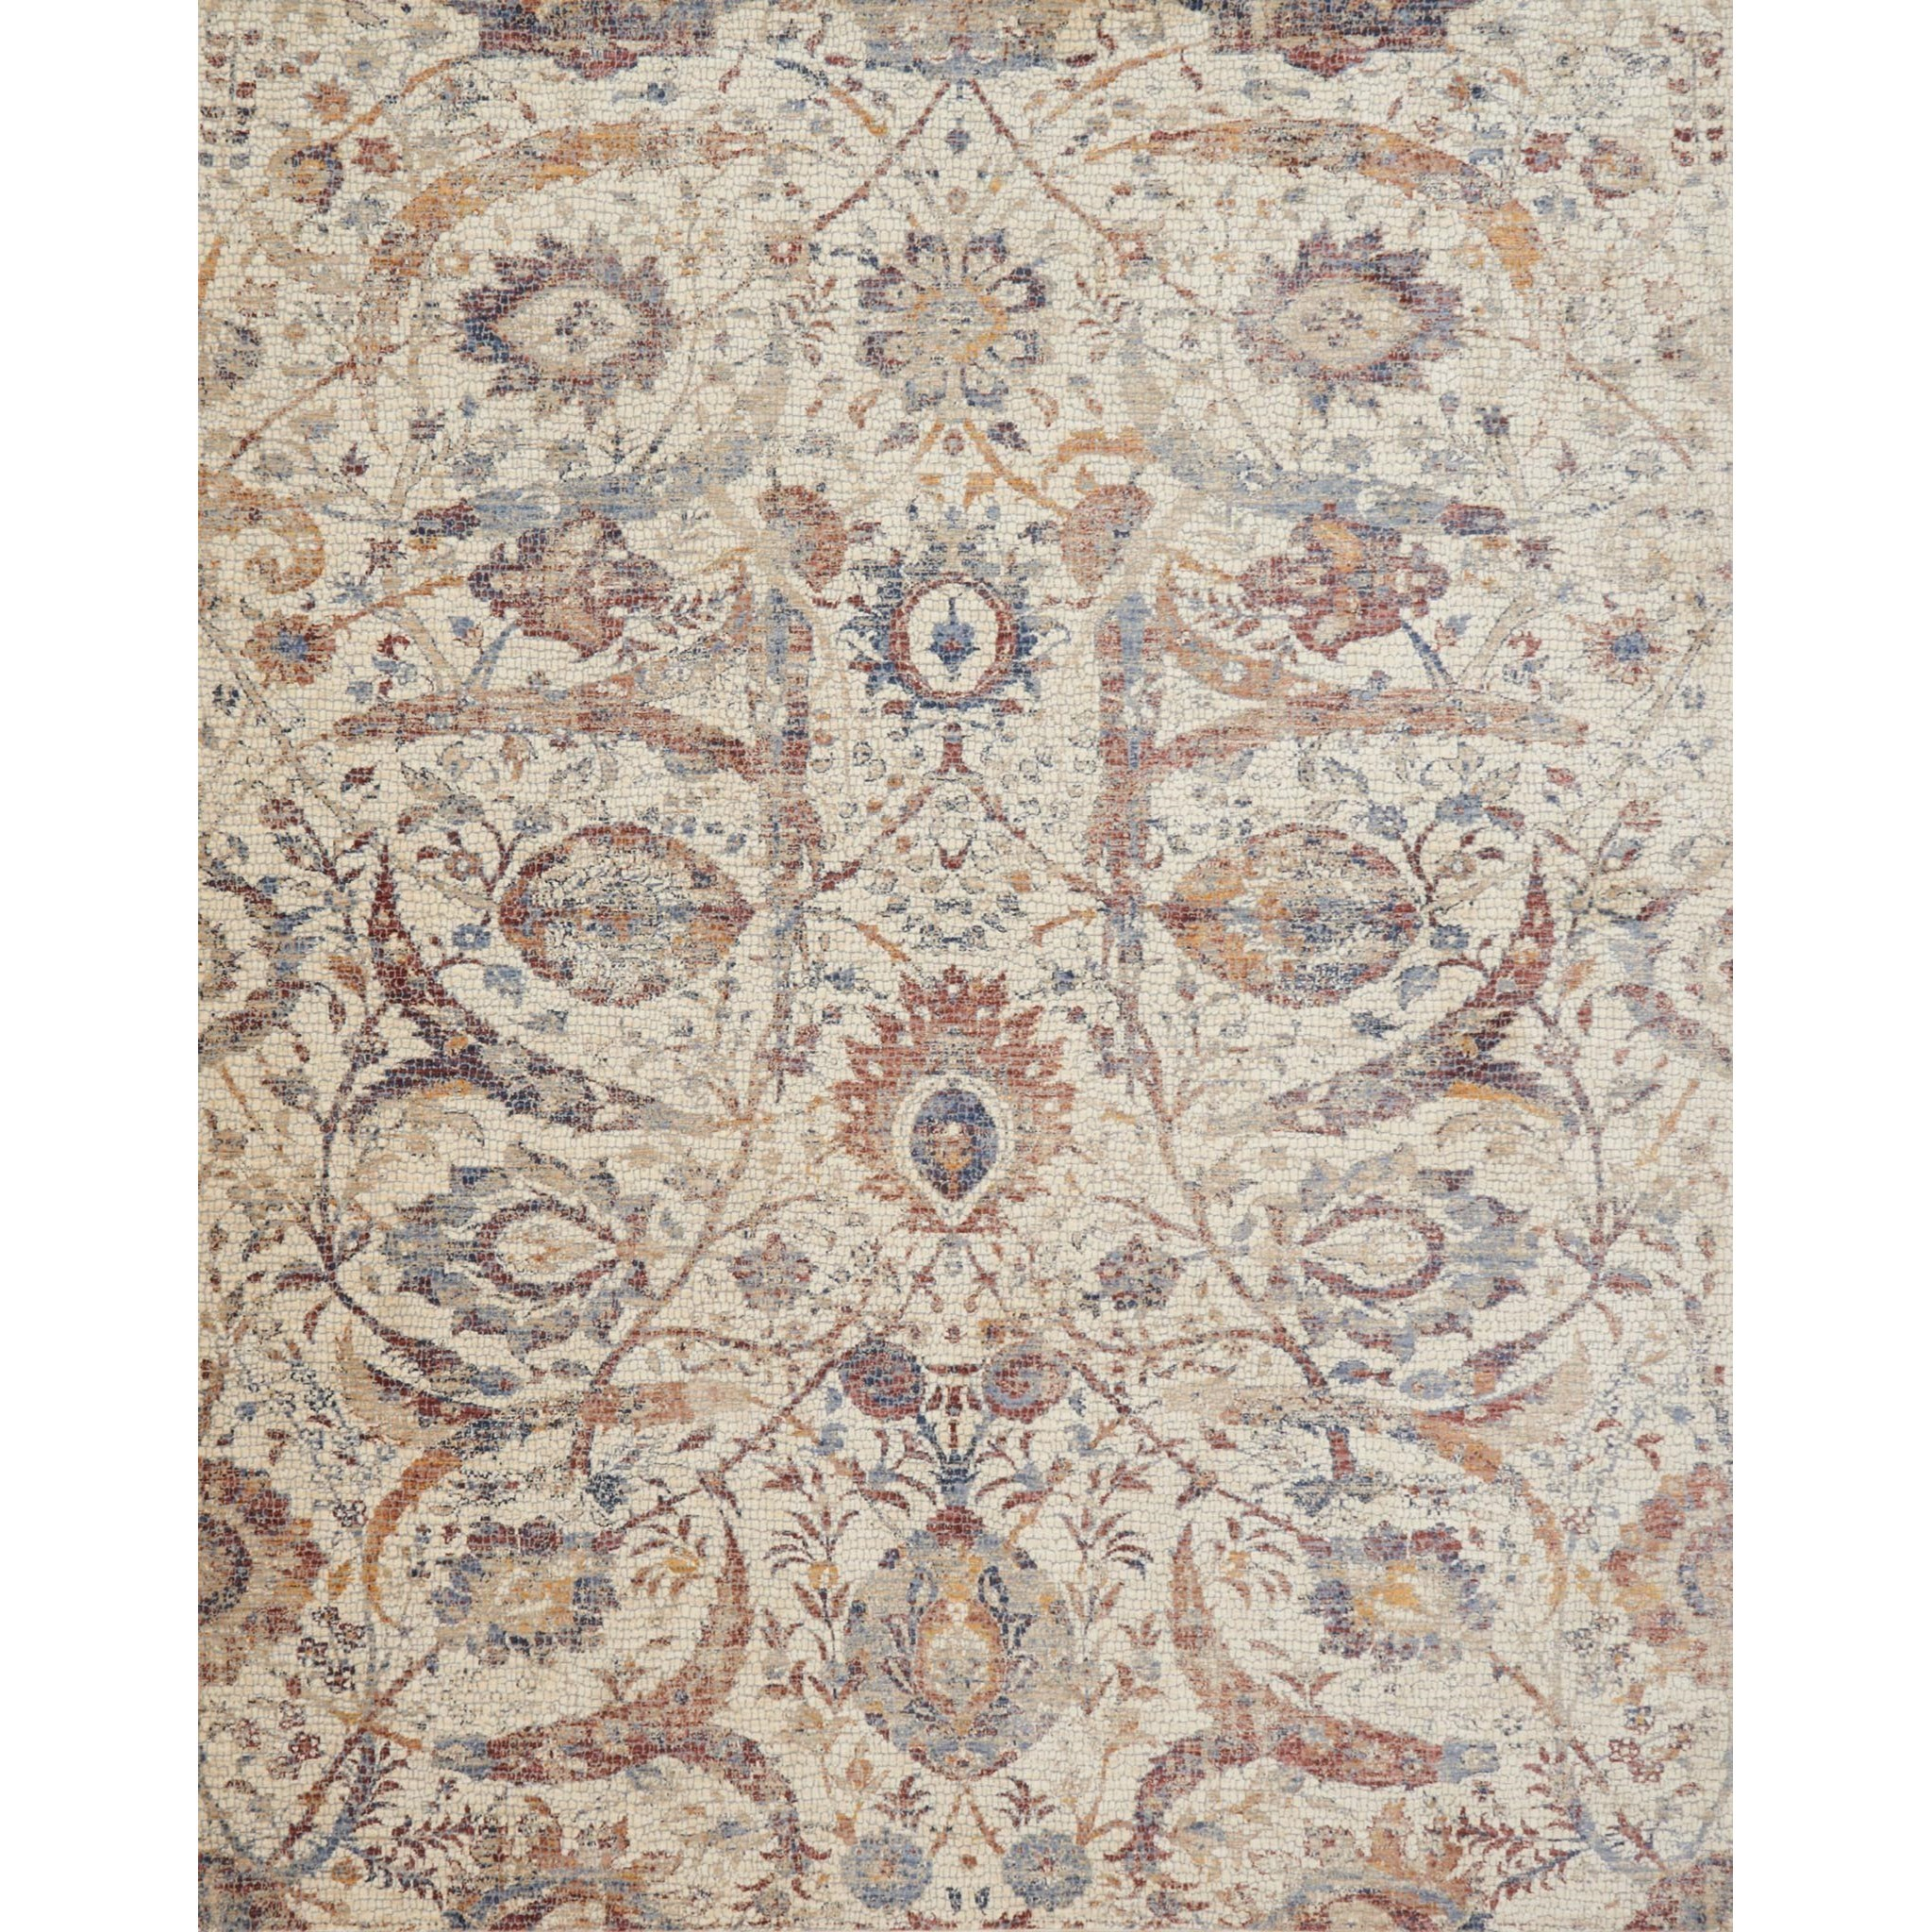 """Porcia 7'-10"""" X 7'-10"""" Round Rug by Loloi Rugs at Sprintz Furniture"""